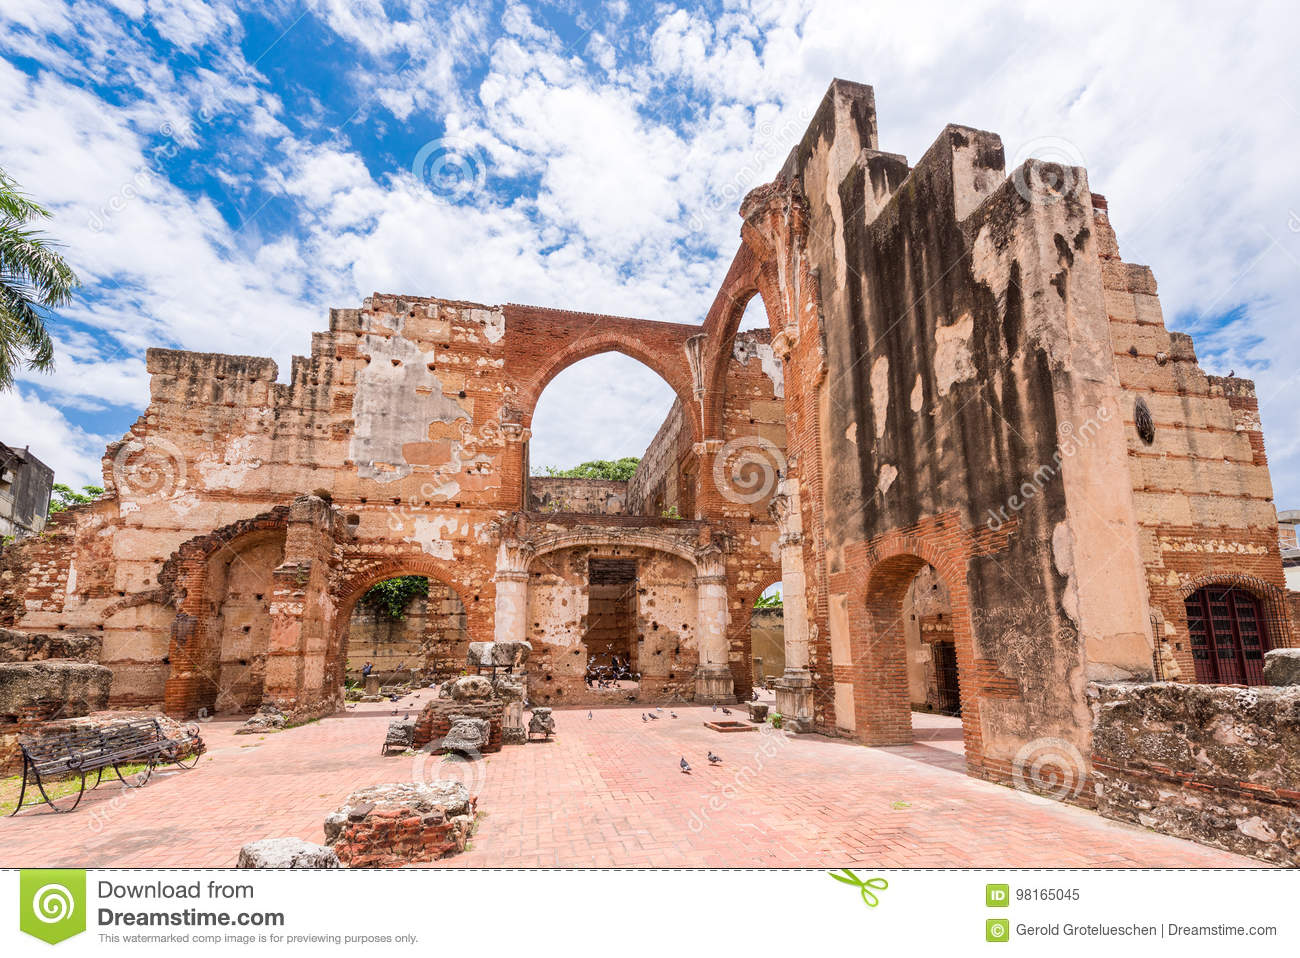 View on Ruins of the Hospital of St. Nicolas of Bari, Santo Domingo, Dominican Republic. Copy space for text.